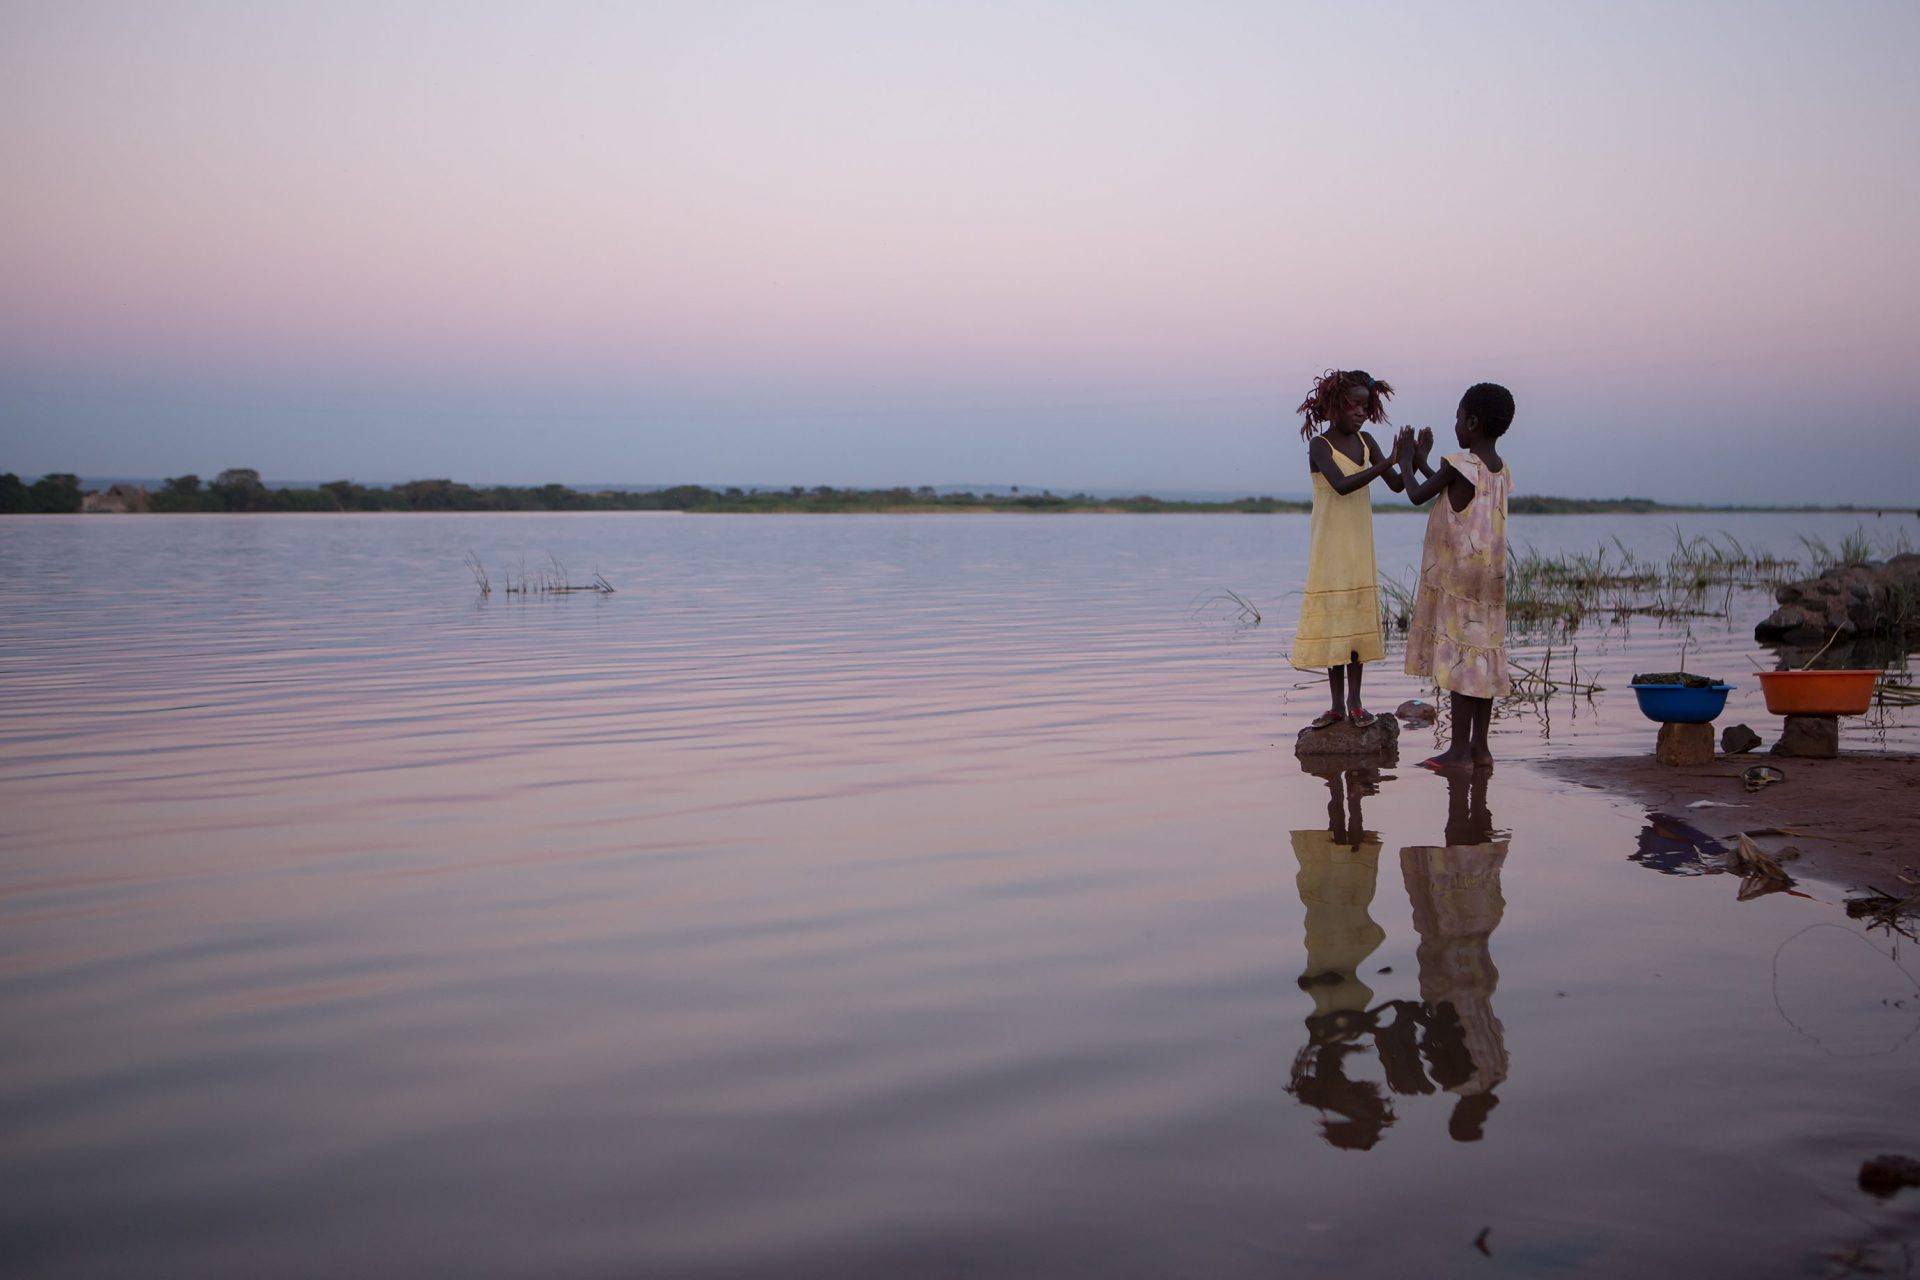 """""""Women aren't the problem, but the solution. The plight of girls is no more a tragedy than an opportunity."""" - Nicolas Kristof and Sheryl Wundunn, authors of  """"Half the Sky""""Two young girls play a game together as evening falls on the banks of t"""